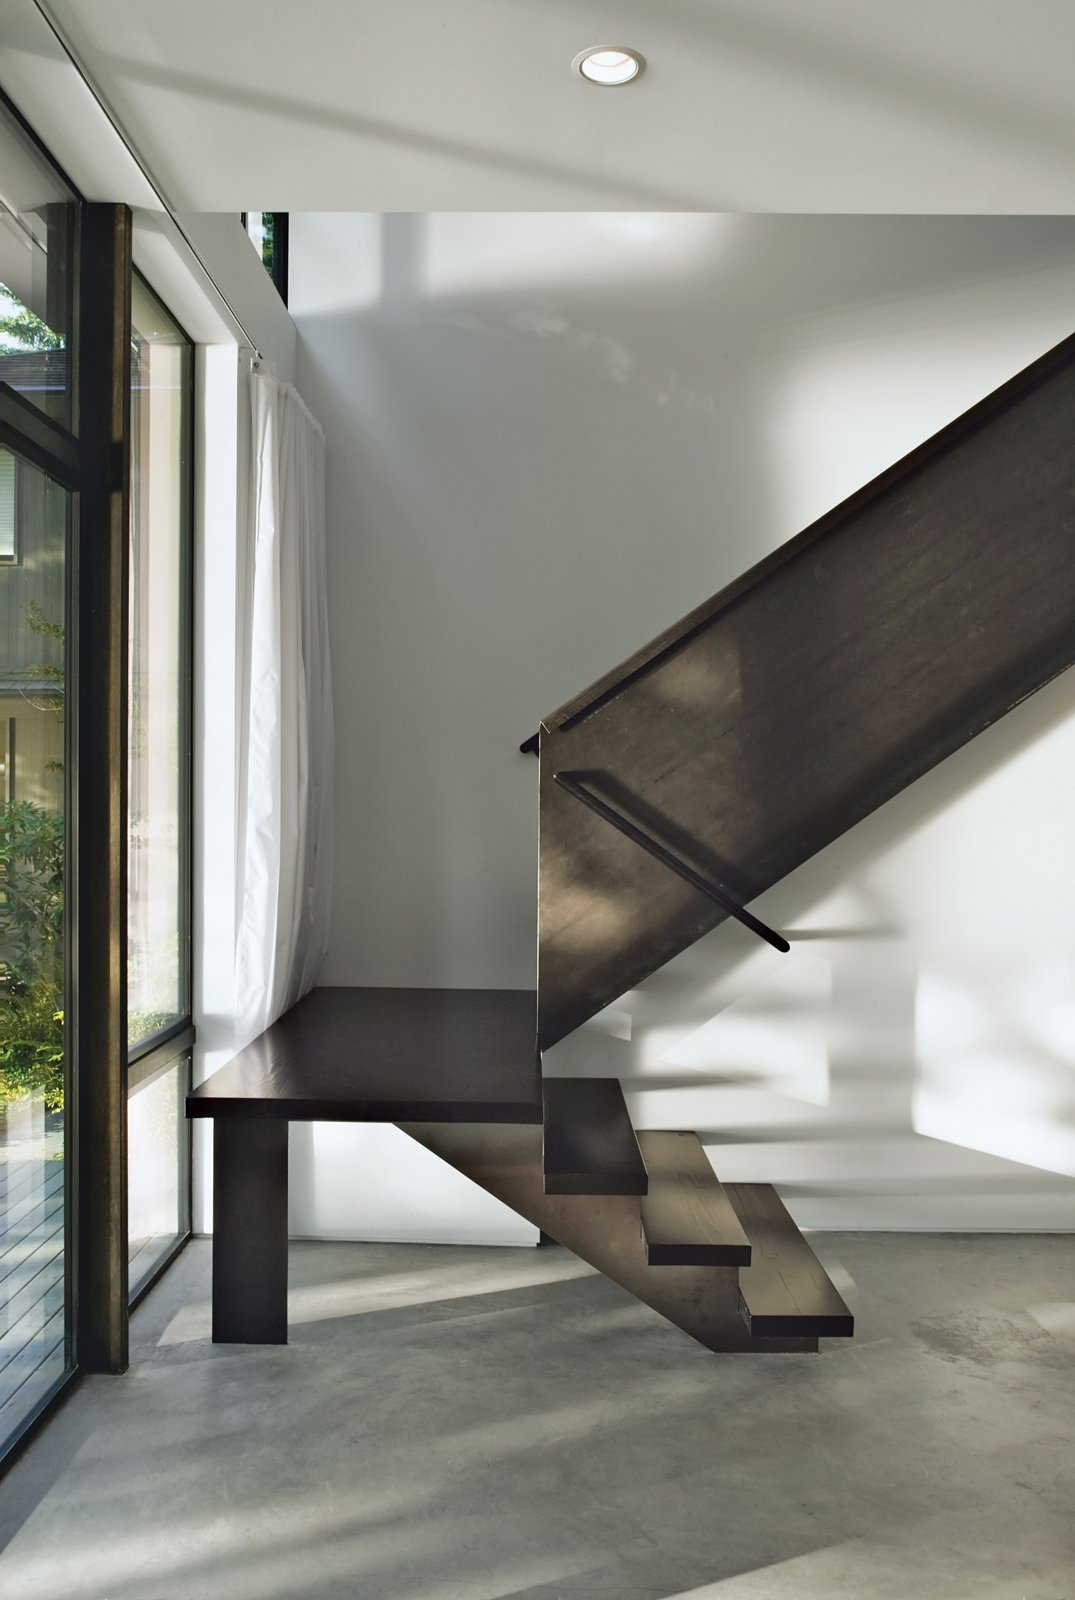 Staircase Steel allowed Kunding to be playful with the staircase's form.  Photos from Staircases We Love